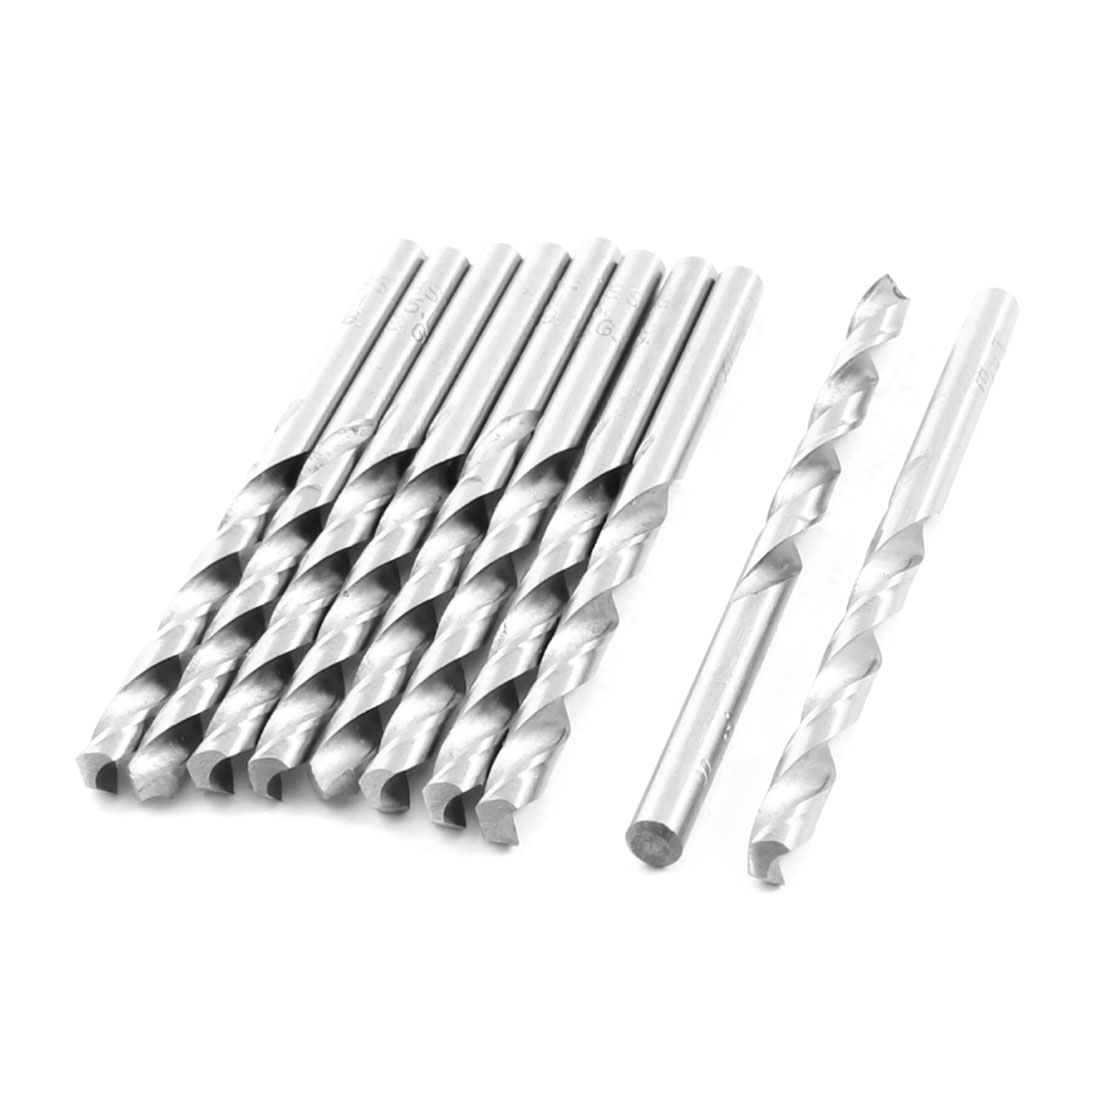 HSS Straight Shank 5.1mm Twist Head 83mm Long Drill Bit Silver Tone 10PCS